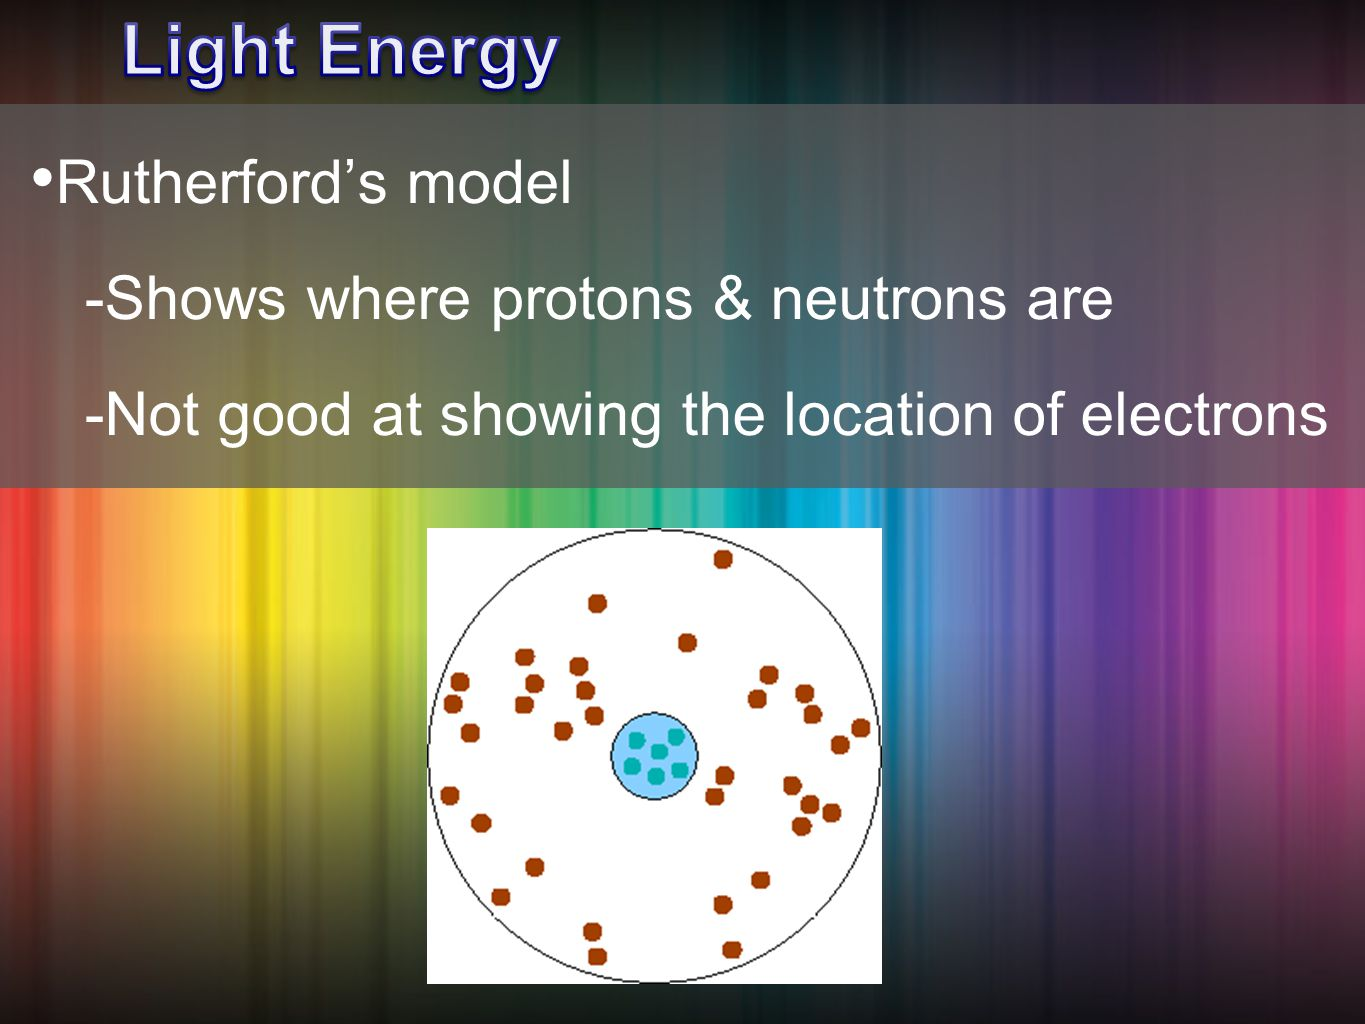 Rutherford's model -Shows where protons & neutrons are -Not good at showing the location of electrons